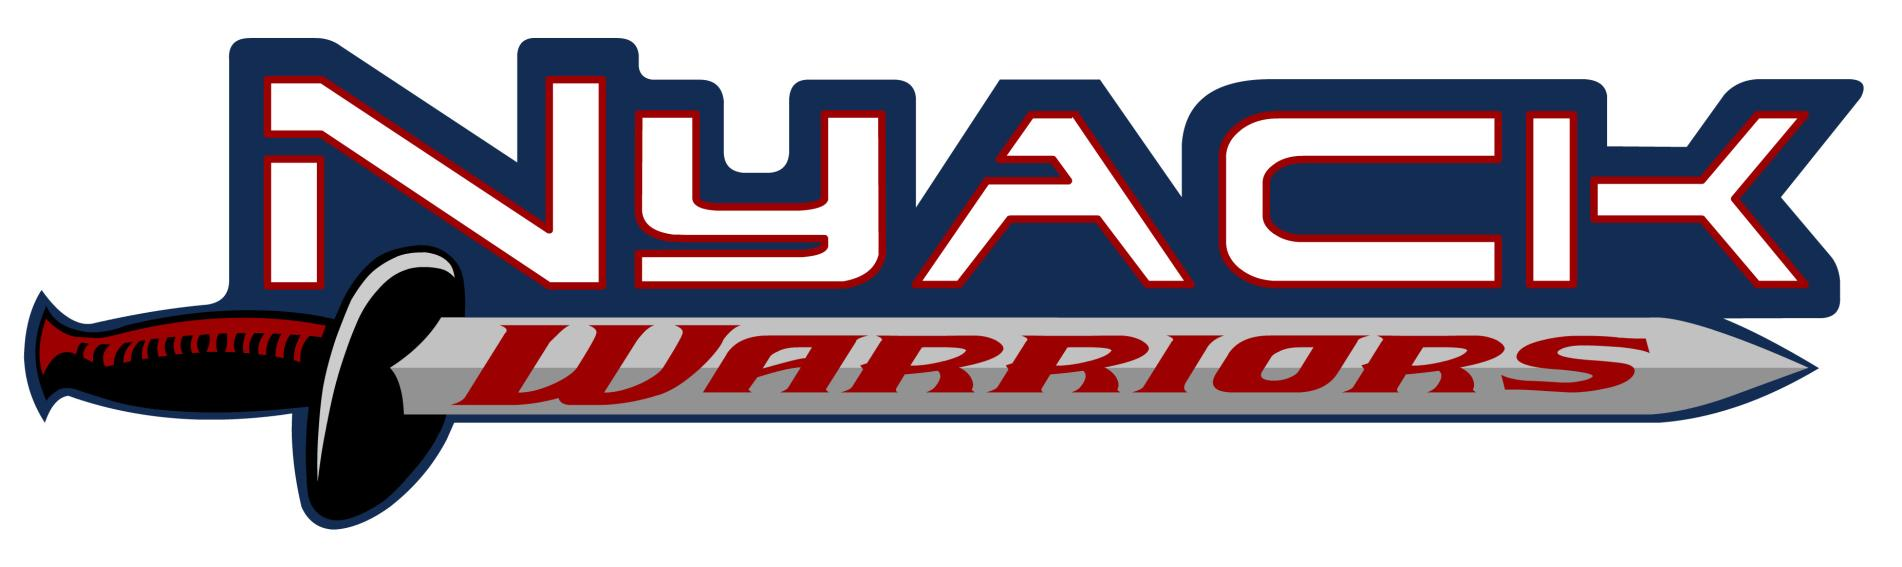 nyack cougar women Get the latest nyack warriorrs news, scores, stats nyack women's lacrosse opens season with road loss to women's basketball defeated by caldwell cougars, 60-82.